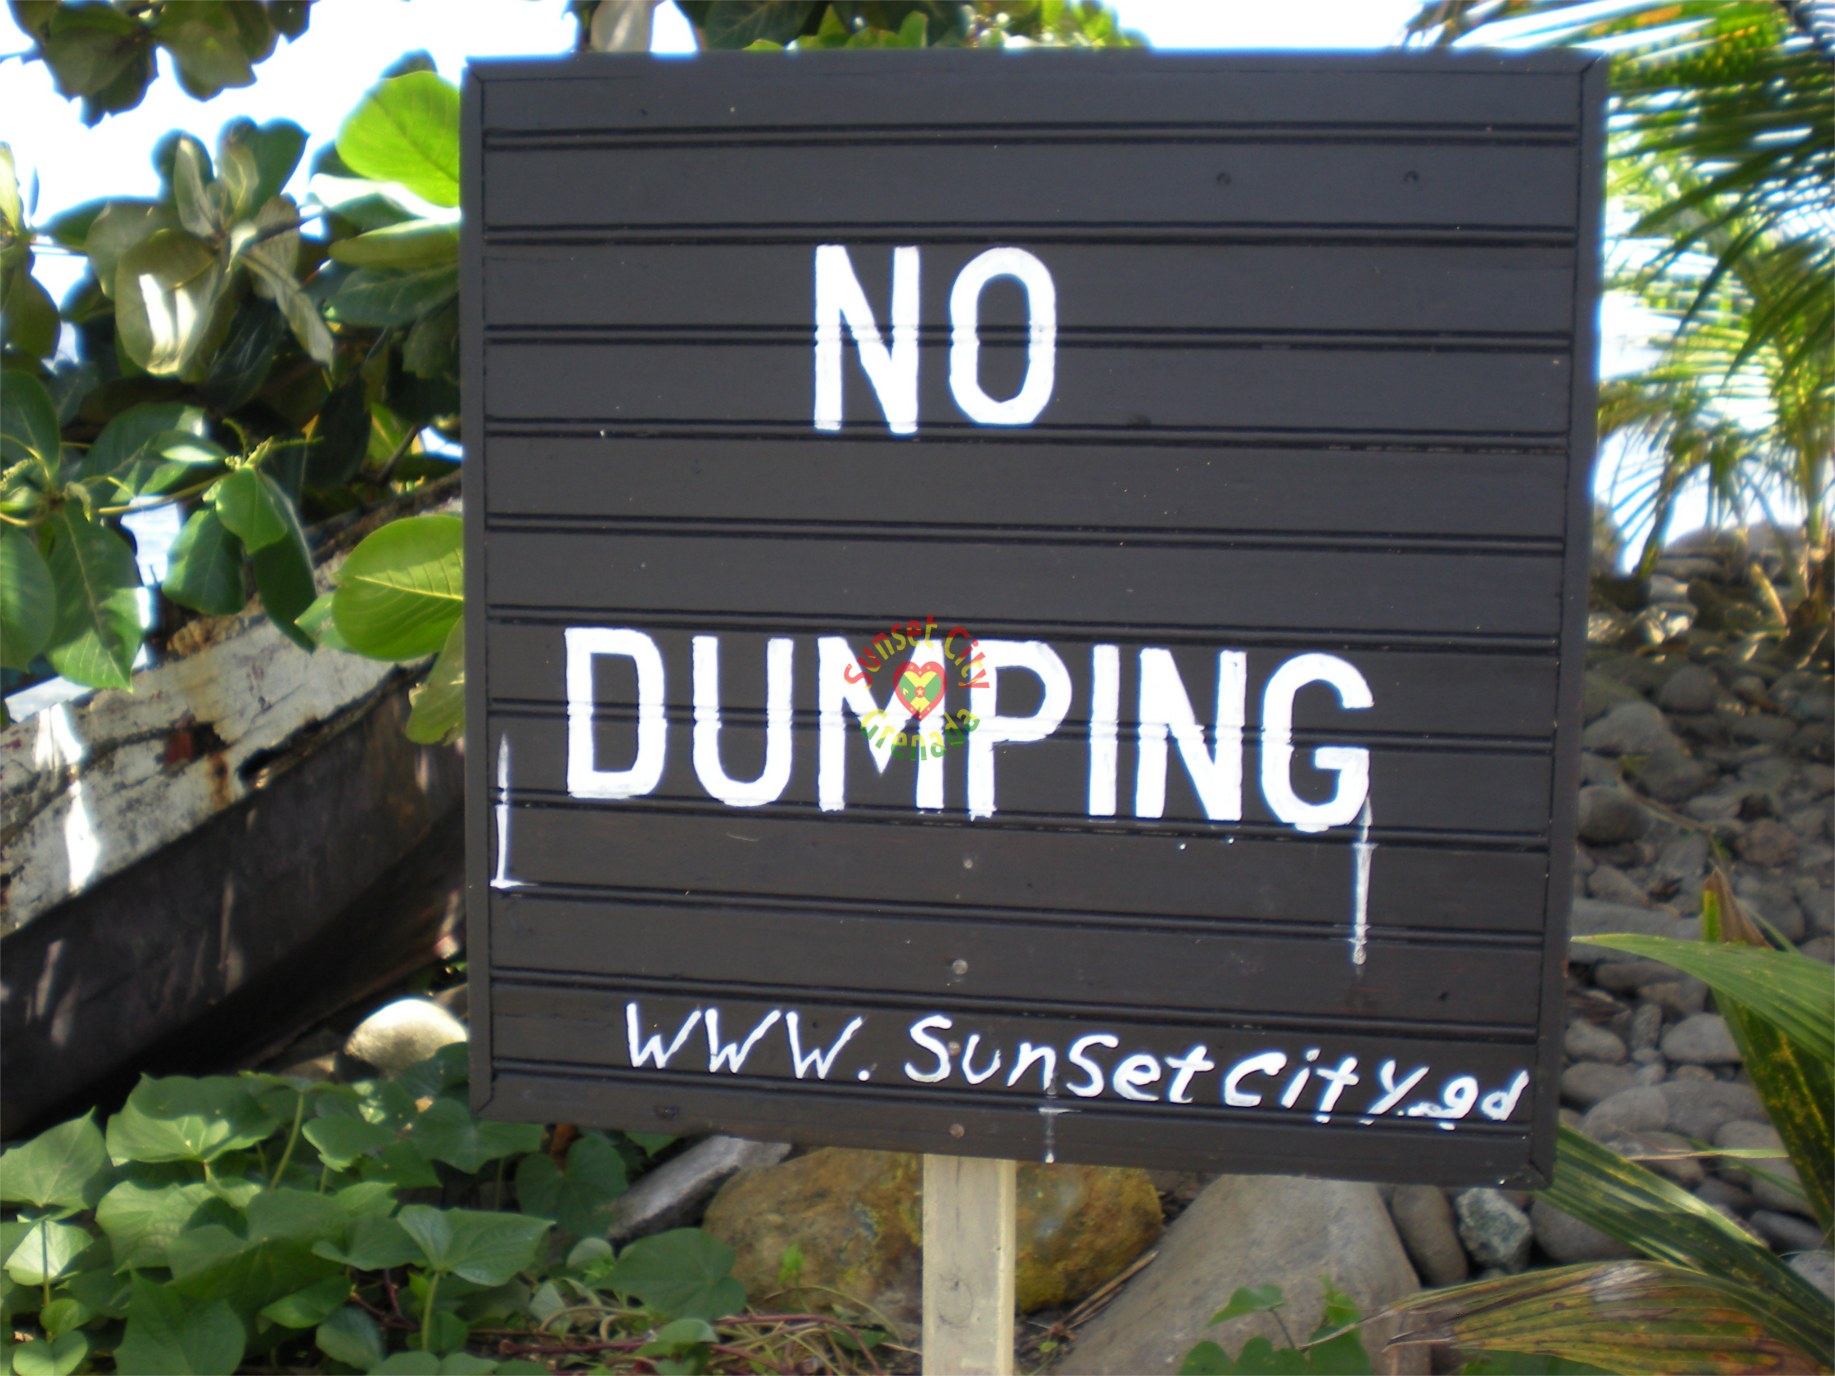 No Dumping sign - sponsored by Sunset City Grenada